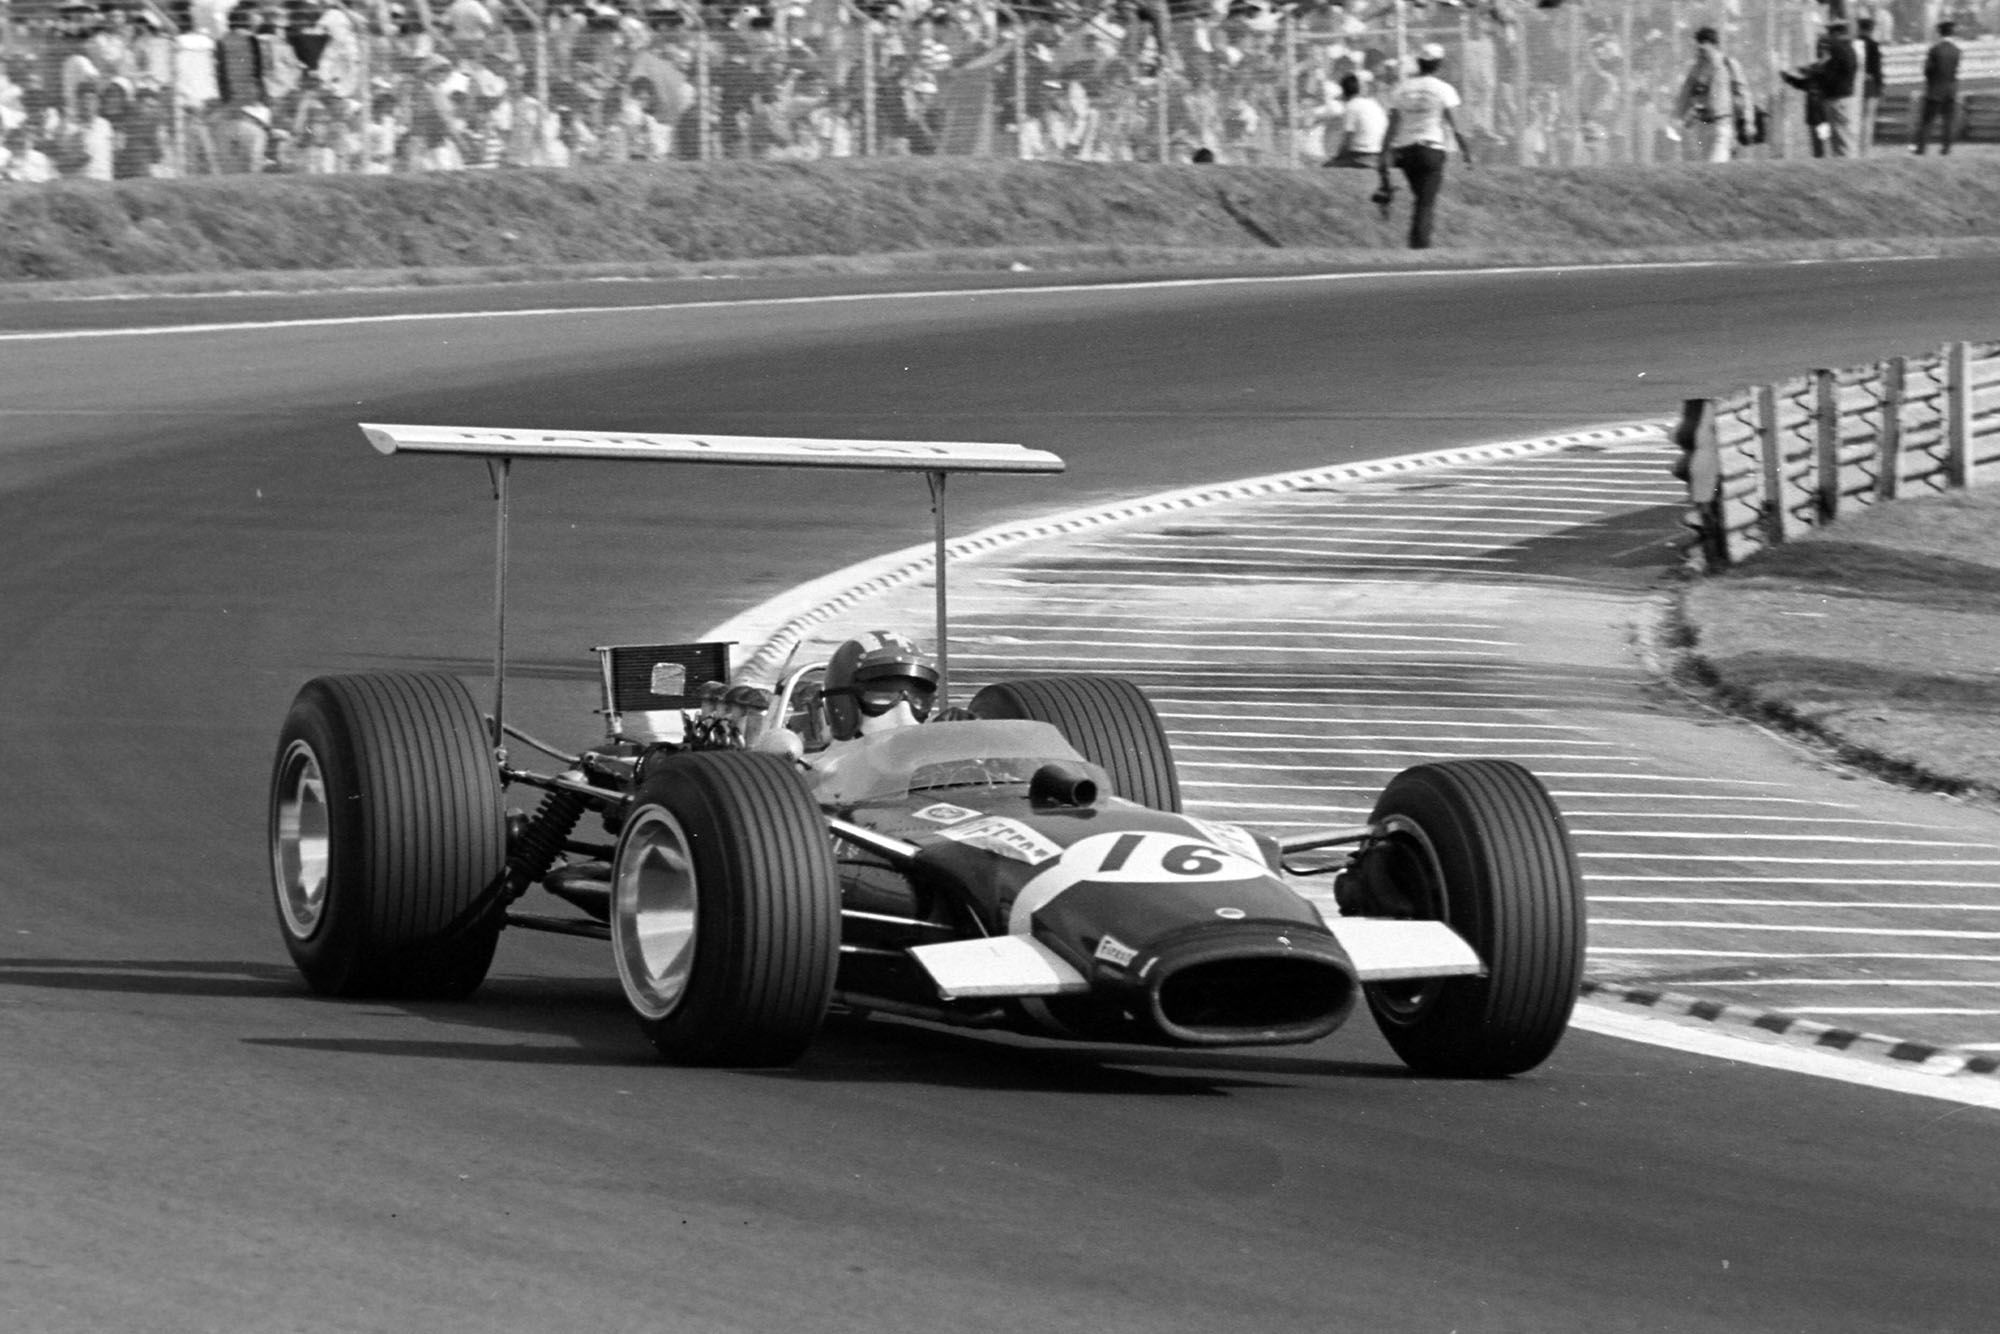 Jochen Rindt in his Rob Walker Lotus at the 1968 Mexican Grand Prix